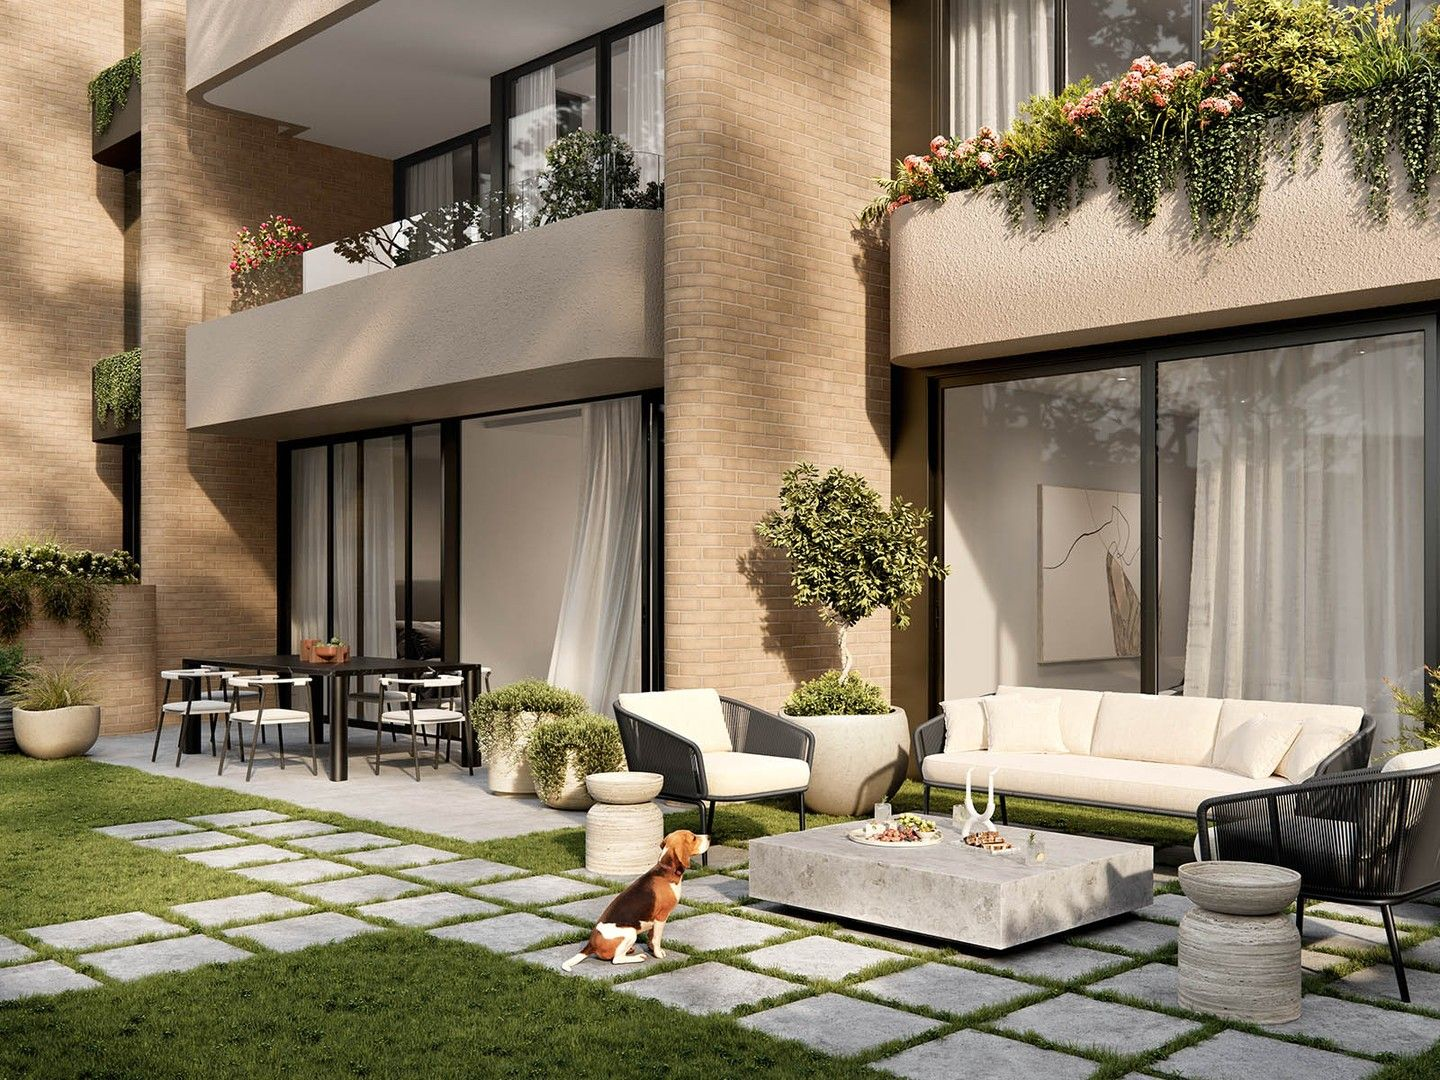 1 bedrooms New Apartments / Off the Plan in  CROWS NEST NSW, 2065